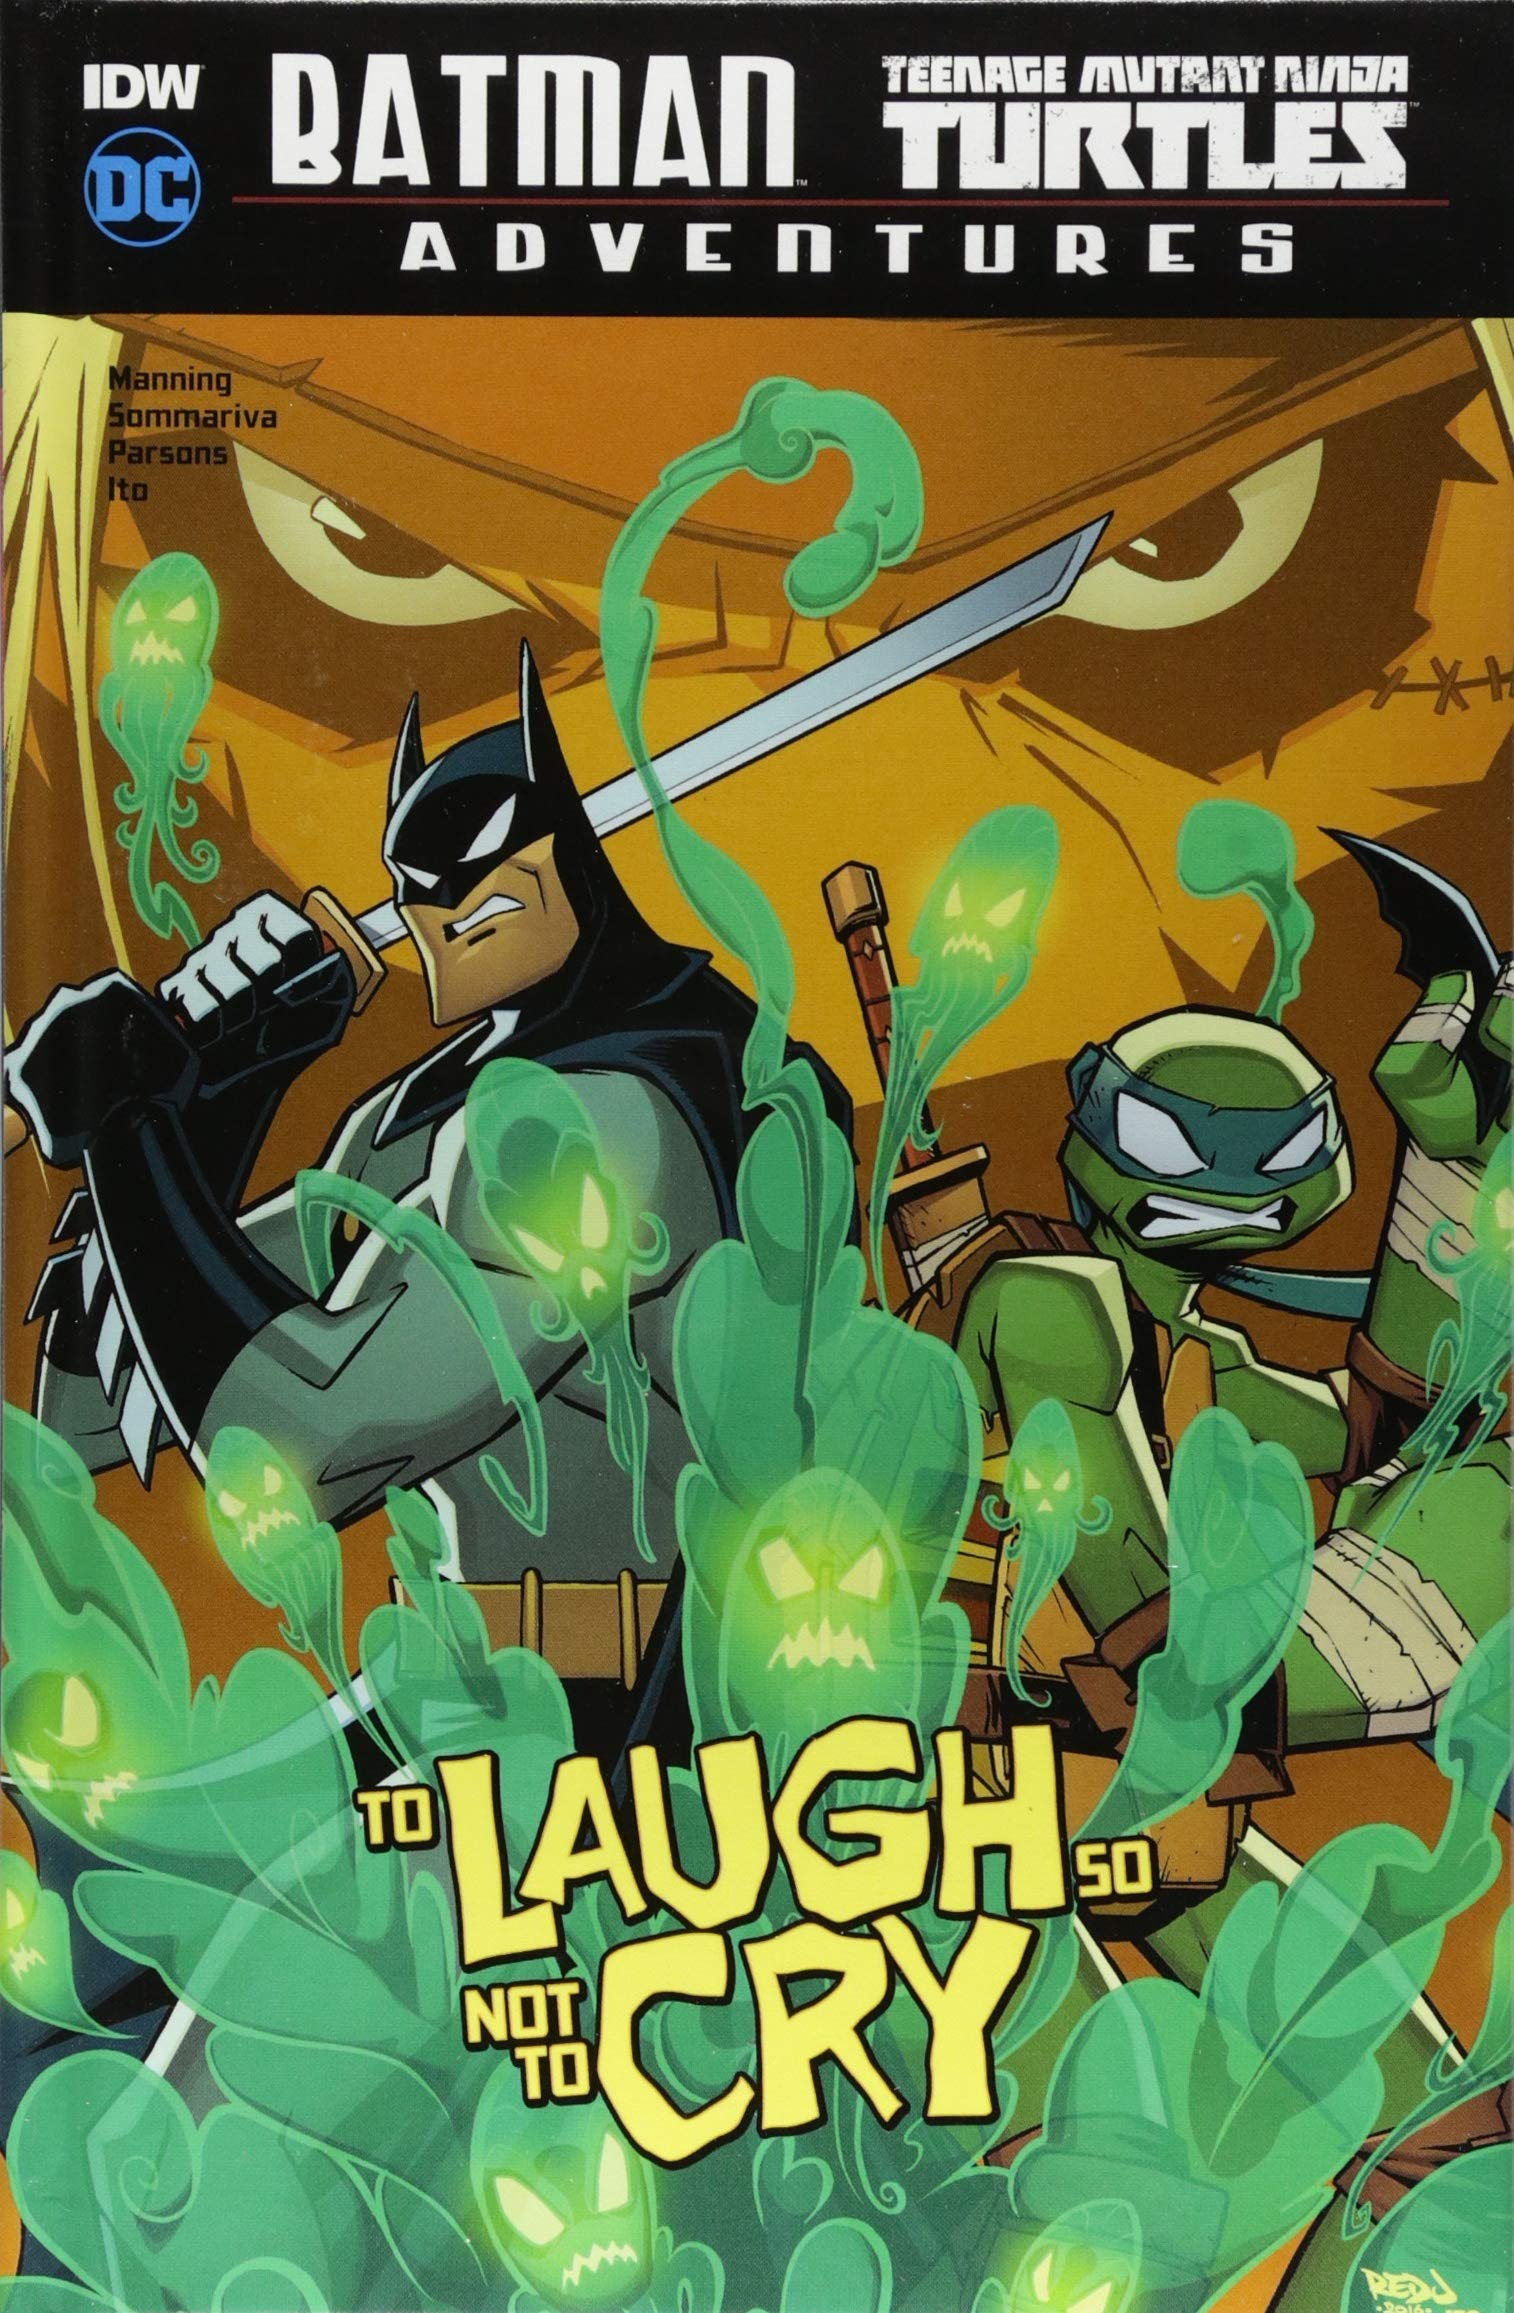 Amazon.com: To Laugh So Not to Cry (Batman / Teenage Mutant ...